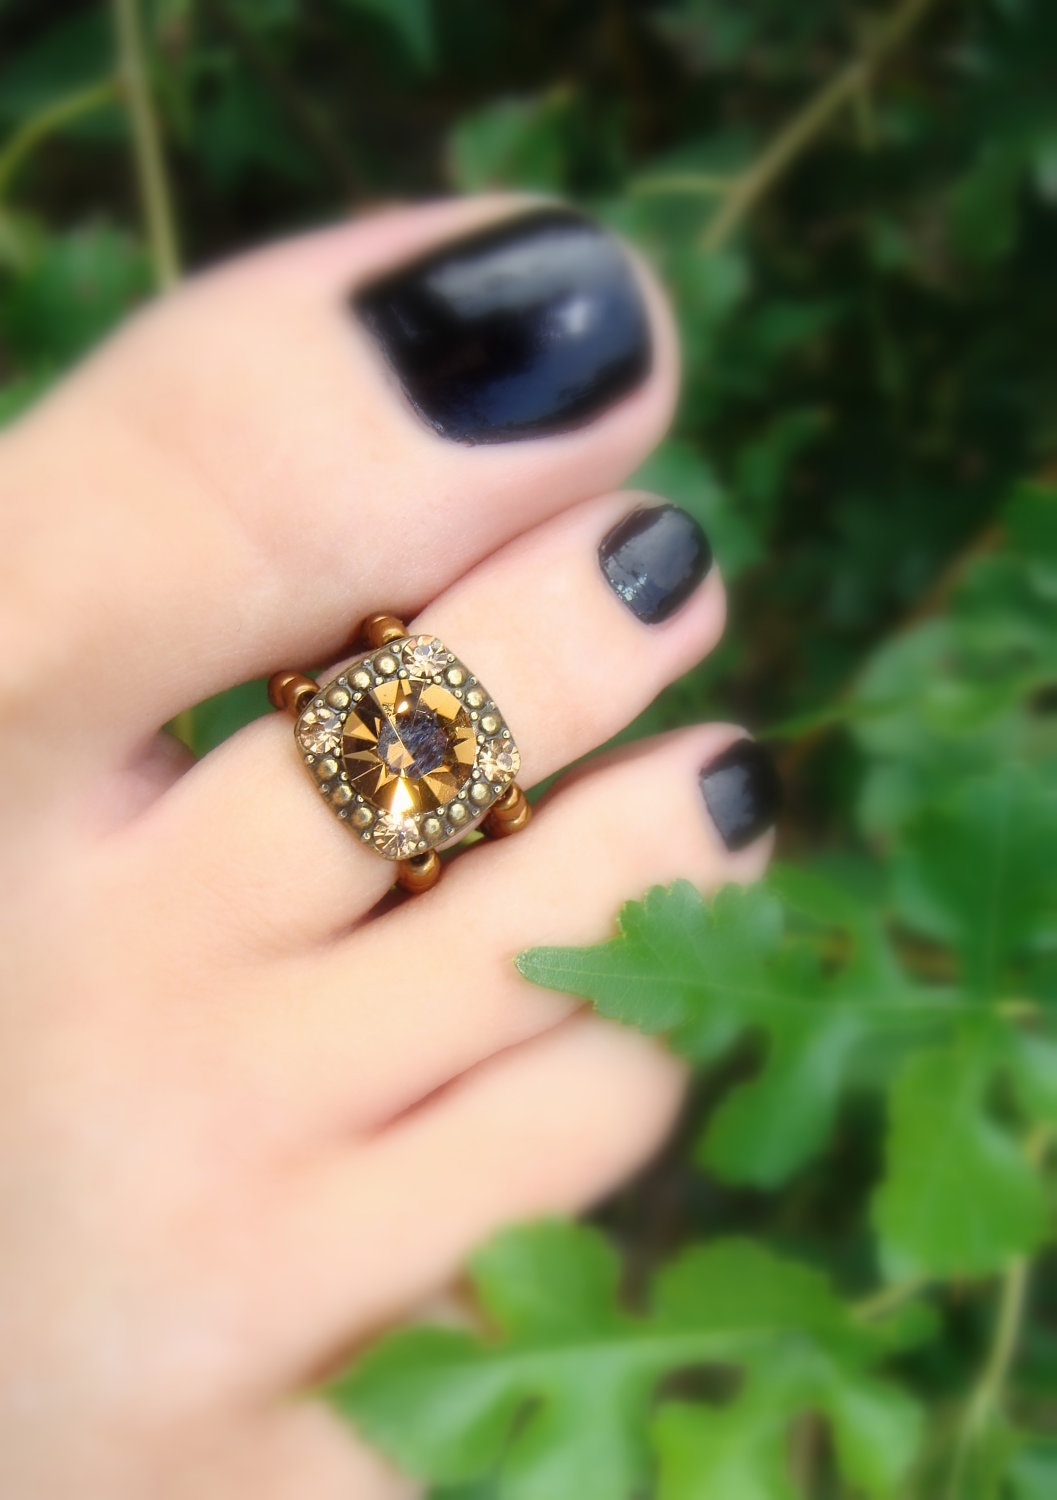 Stunning Toes Rings | Toe Ring | Pinterest | Toe Rings, Ring And Pertaining To Recent Toe Rings With Diamonds (Gallery 2 of 15)